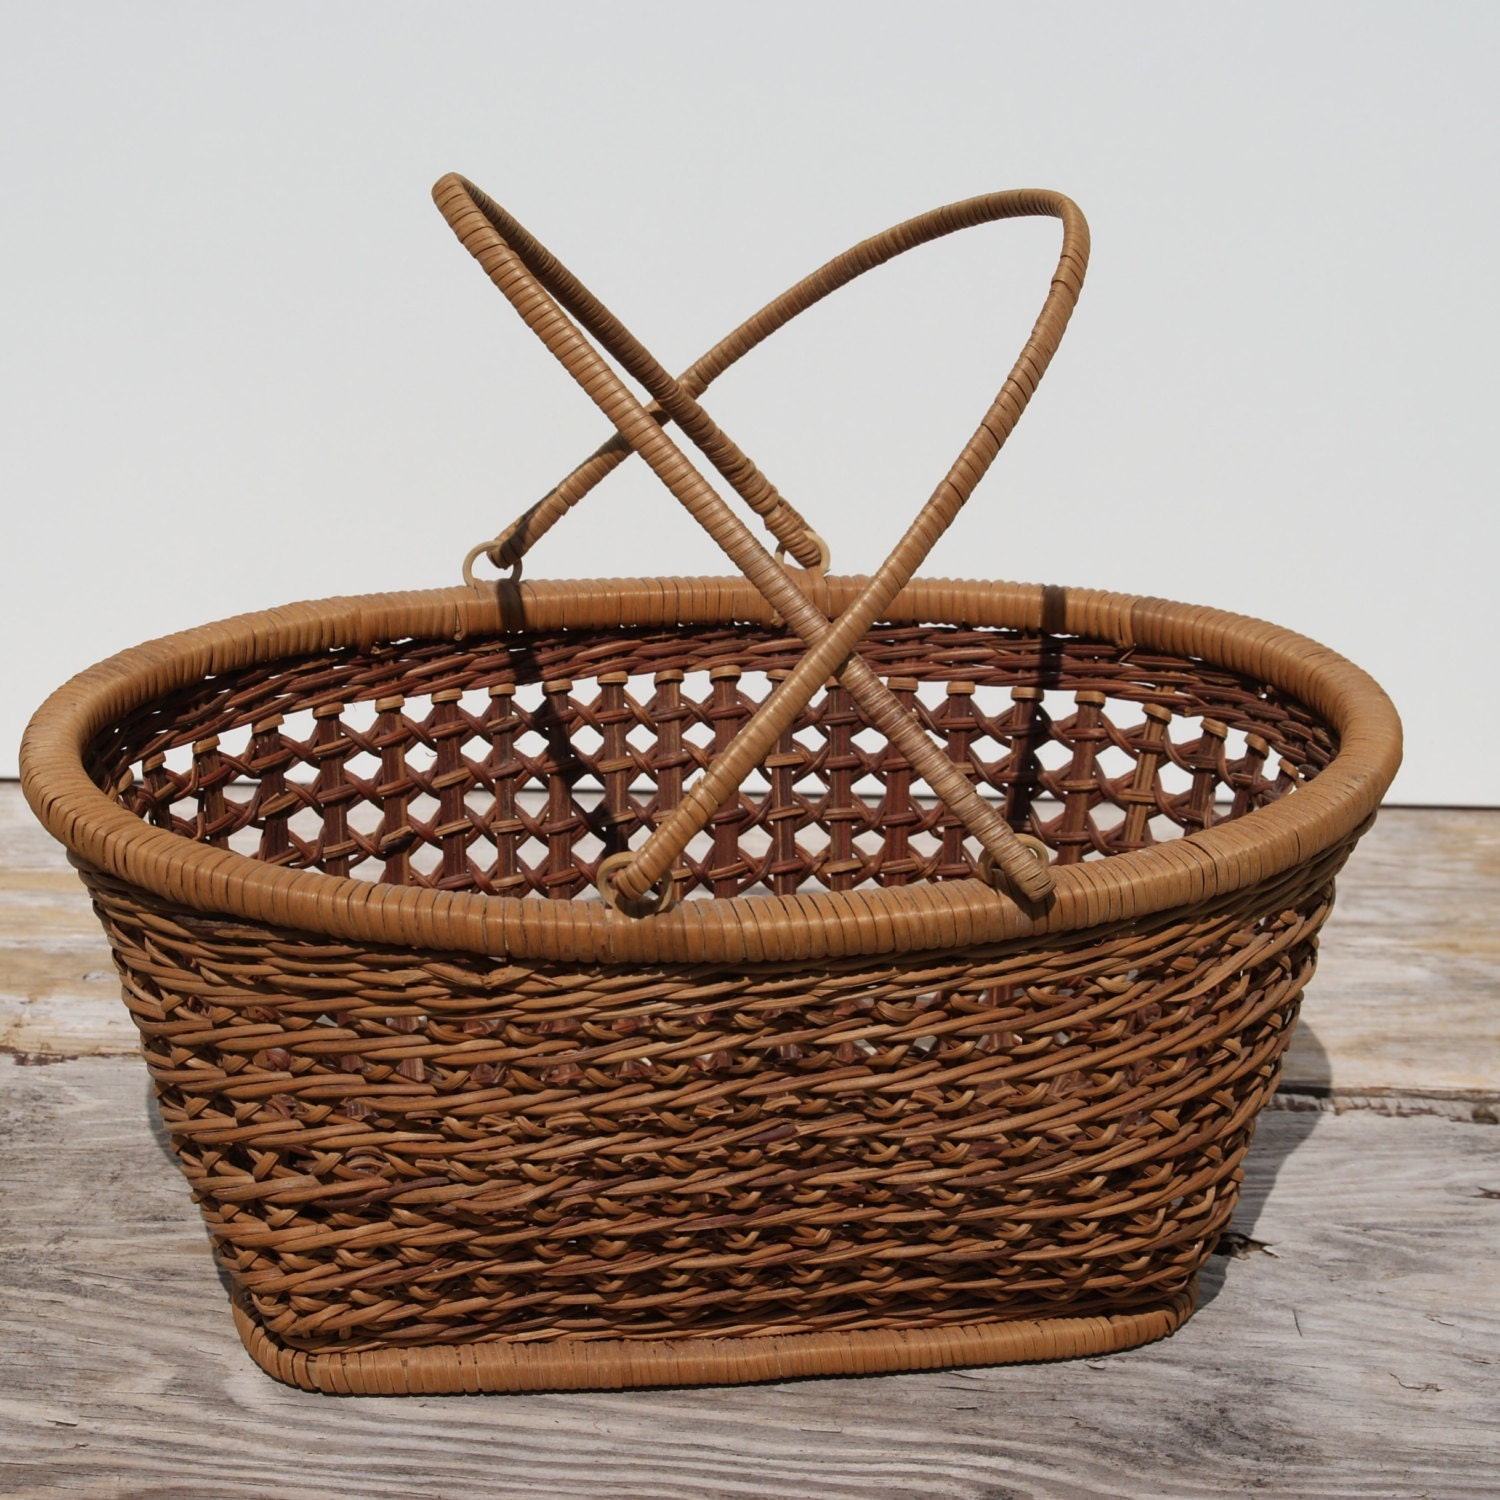 Knitting Basket With Handles : Vintage wicker gathering basket knitting by beachlanevintage